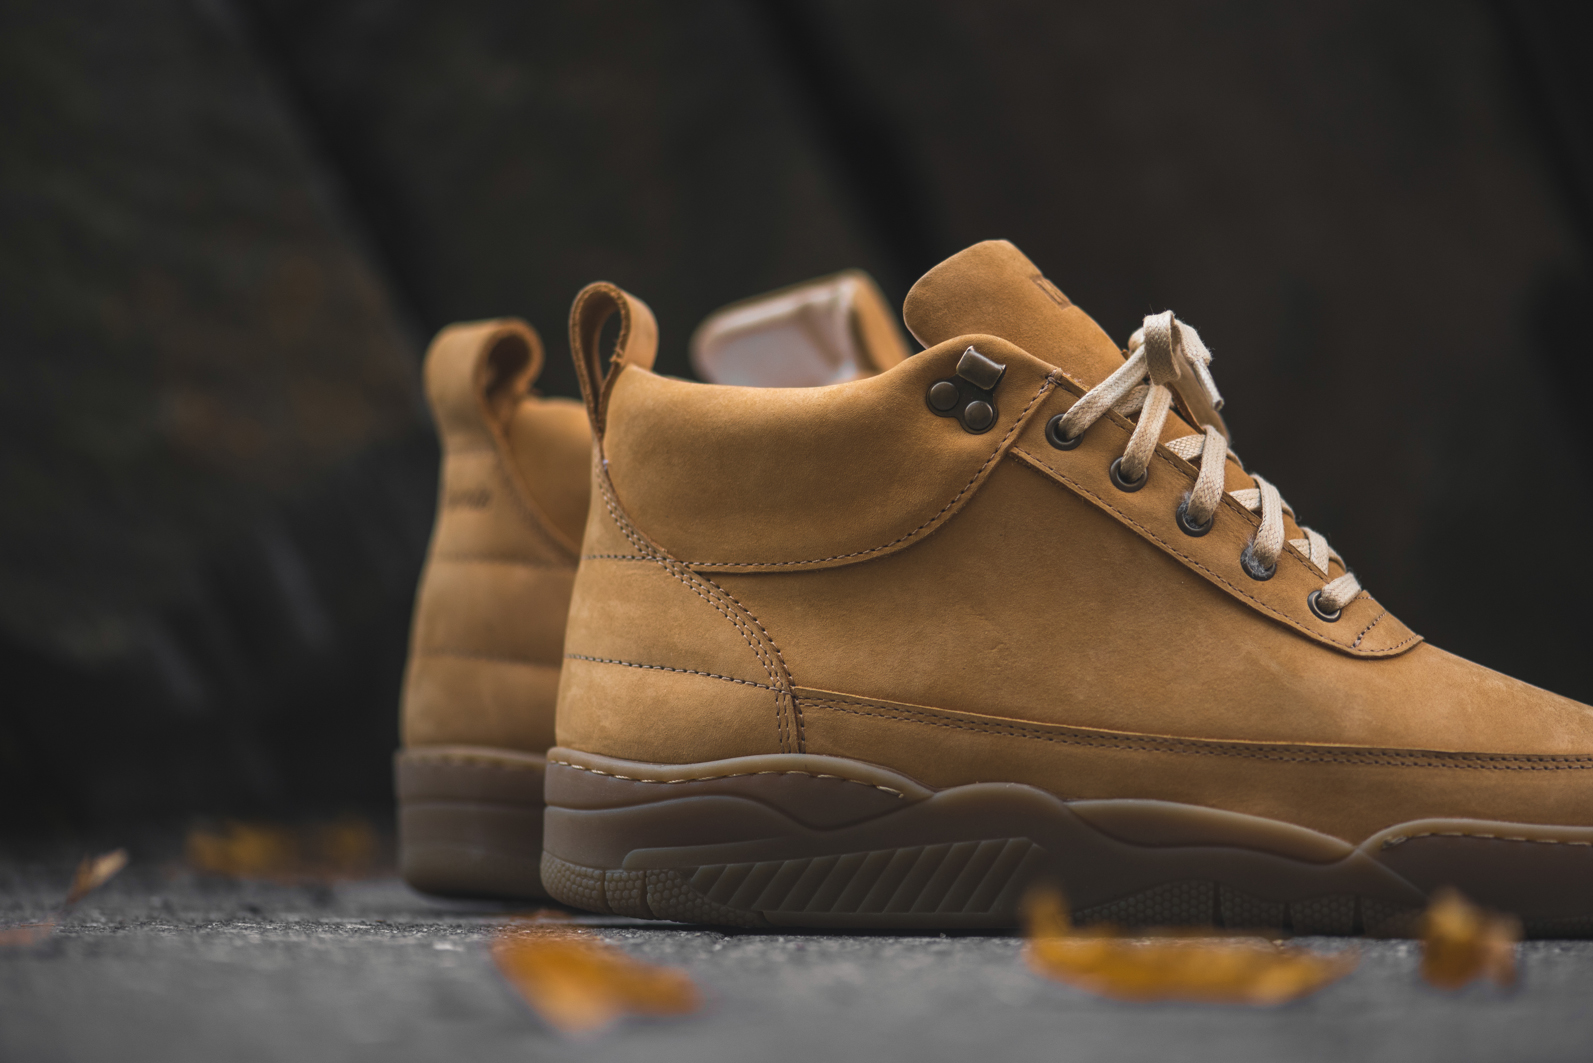 Ronnie Fieg x Filling Pieces RF-Mid II Release reminder